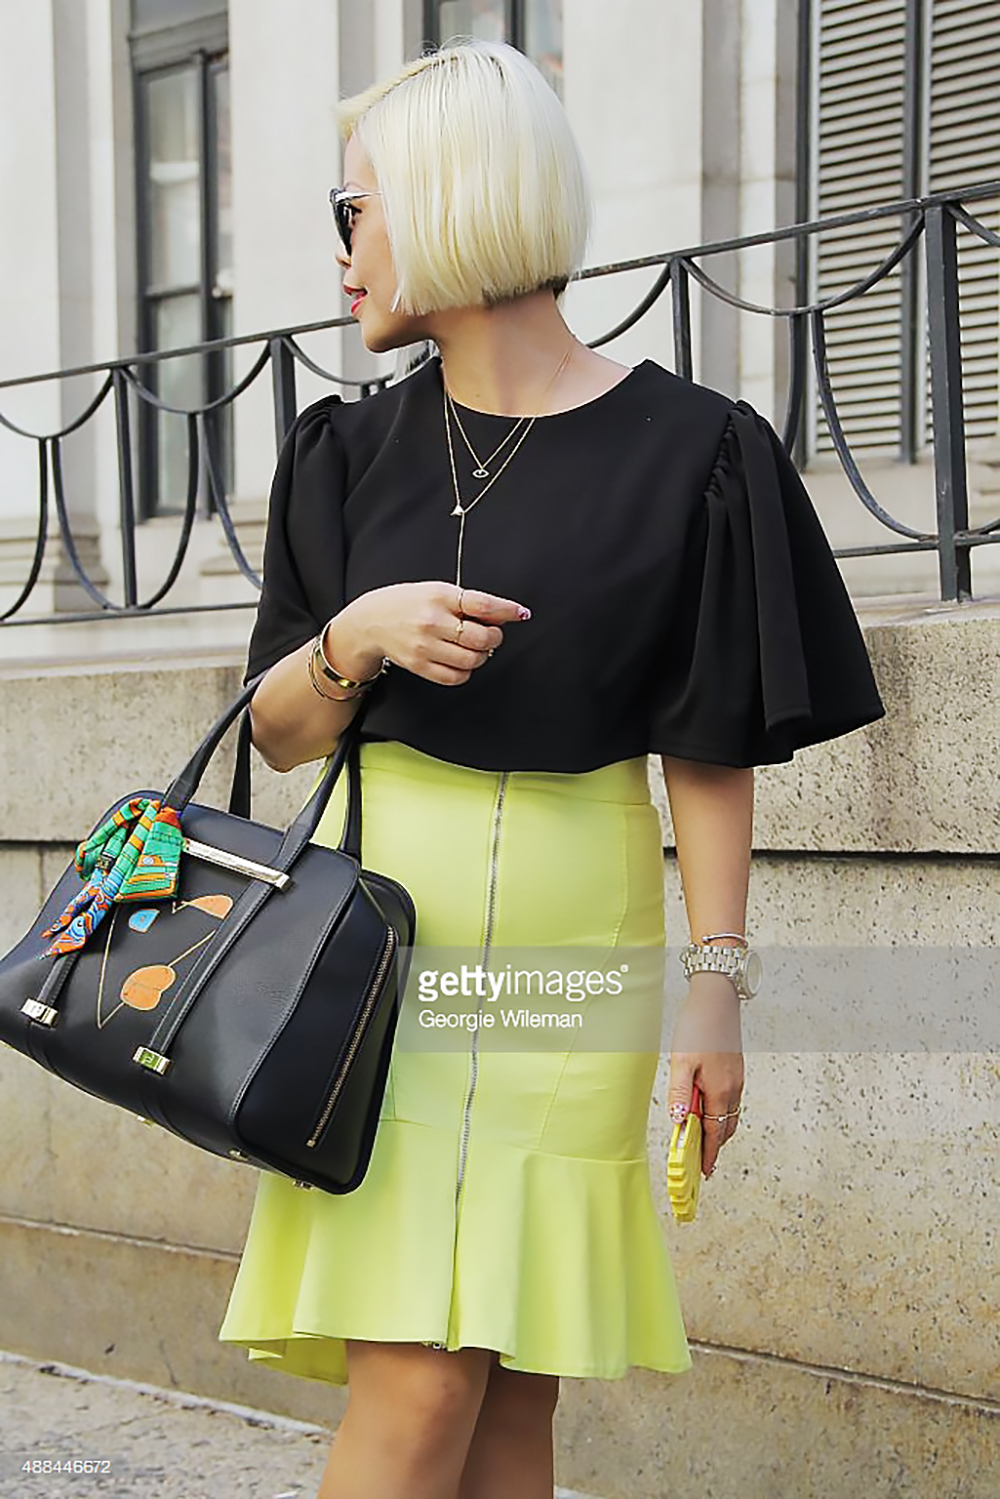 New York Fashion Week- Crystal Phuong on Gettyimages